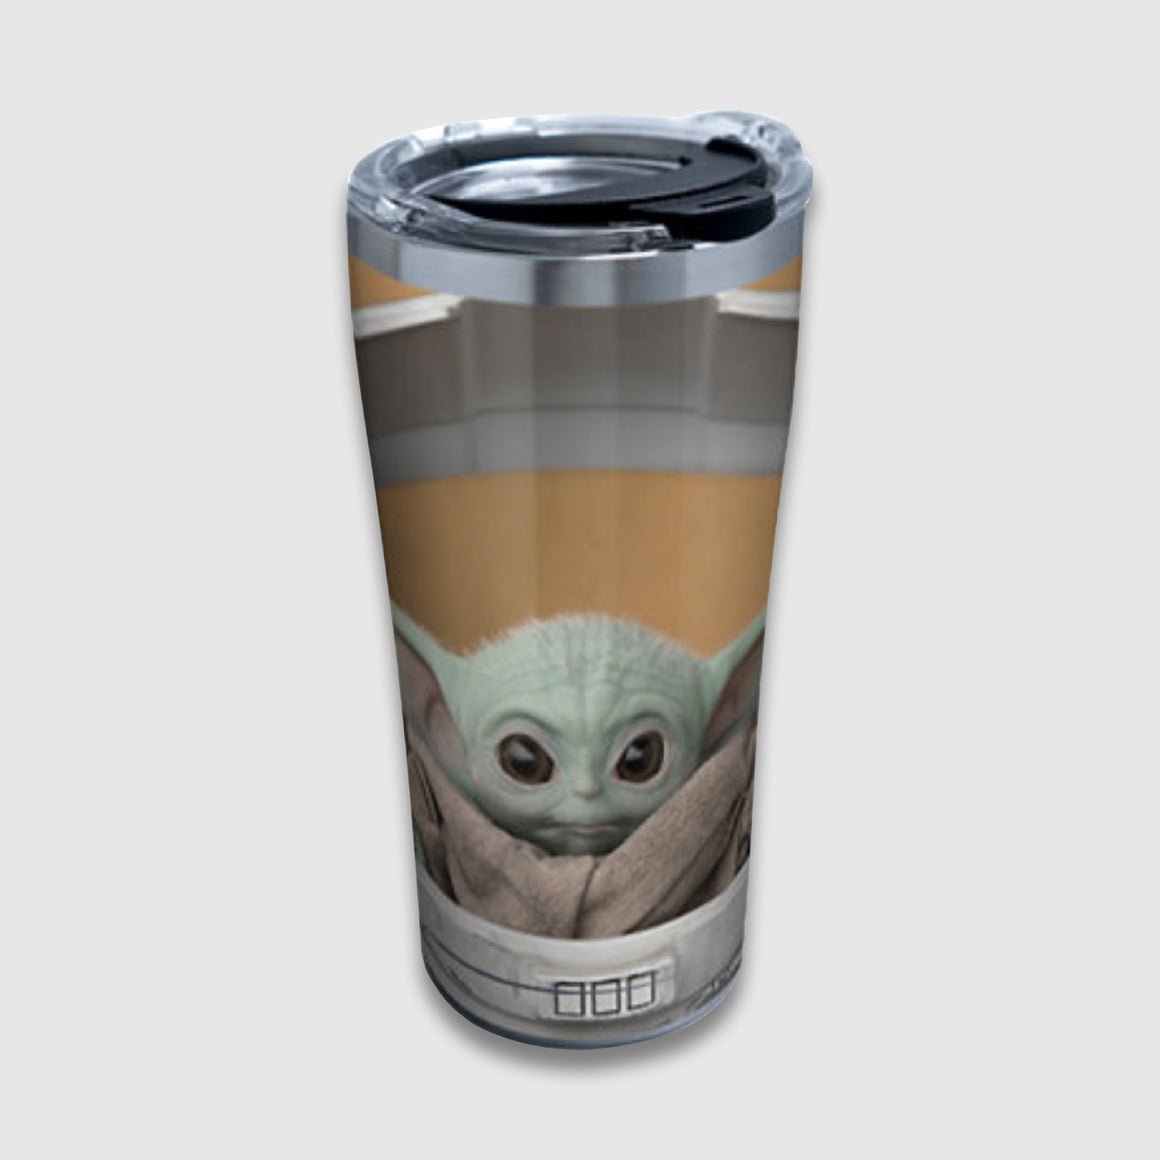 Star Wars The Mandalorian - The Child Stare Tervis Tumbler